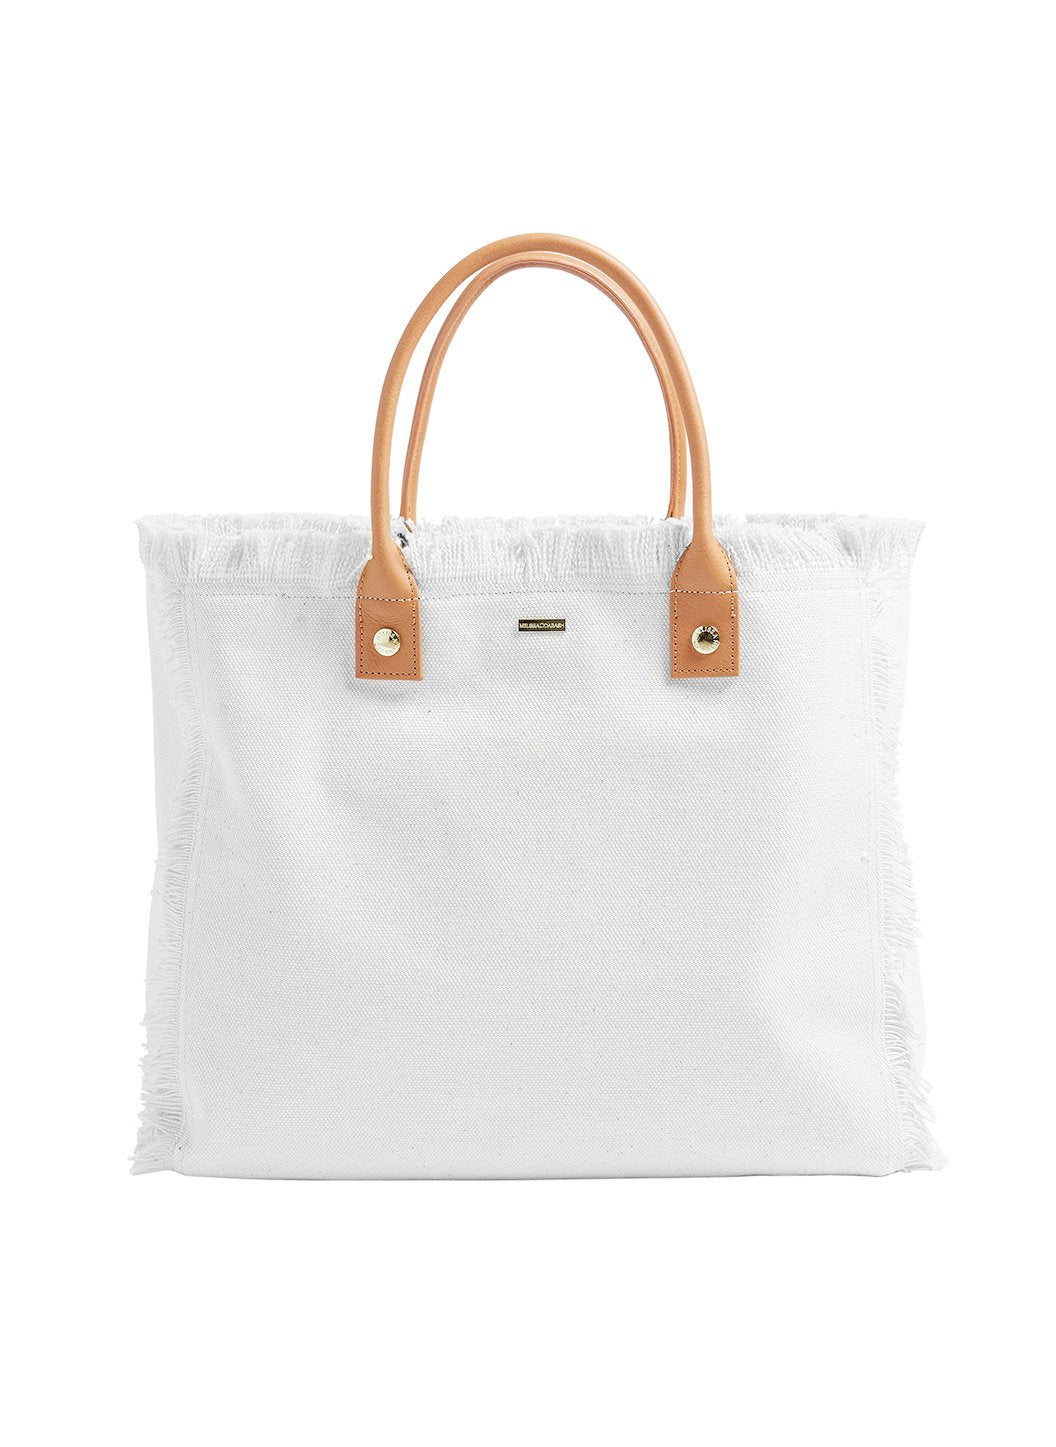 cap ferrat large beach tote white 1 2019